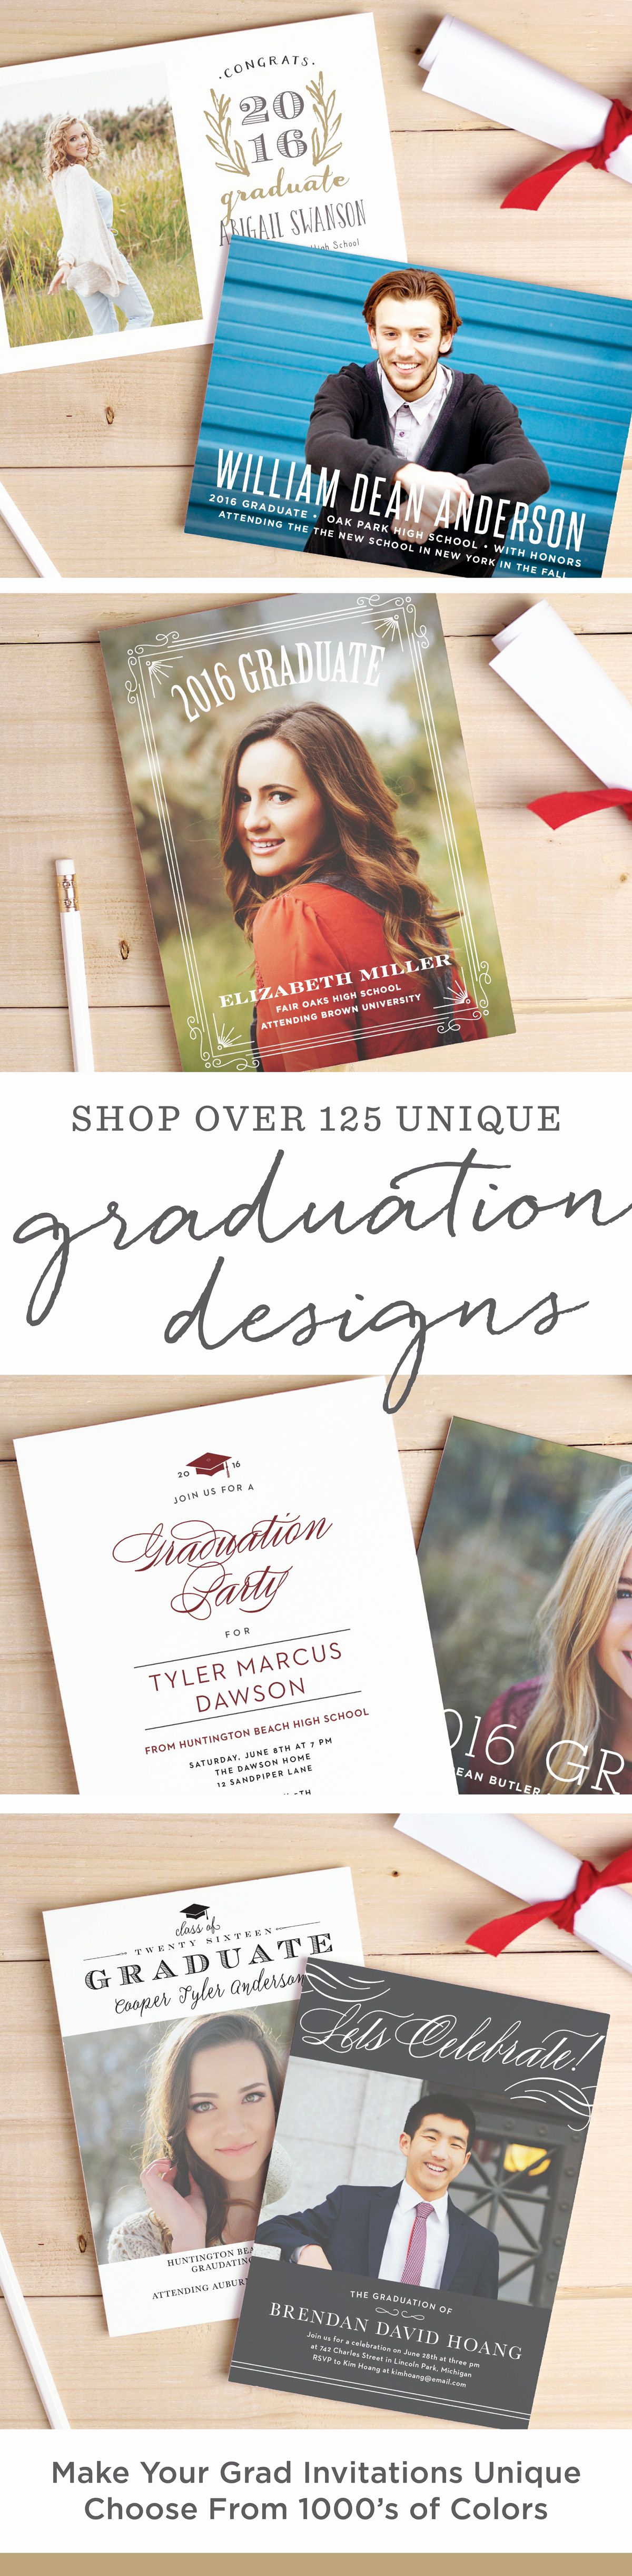 Create A Graduation Invitation Unique Make Finding the Perfect Graduation Invitation or